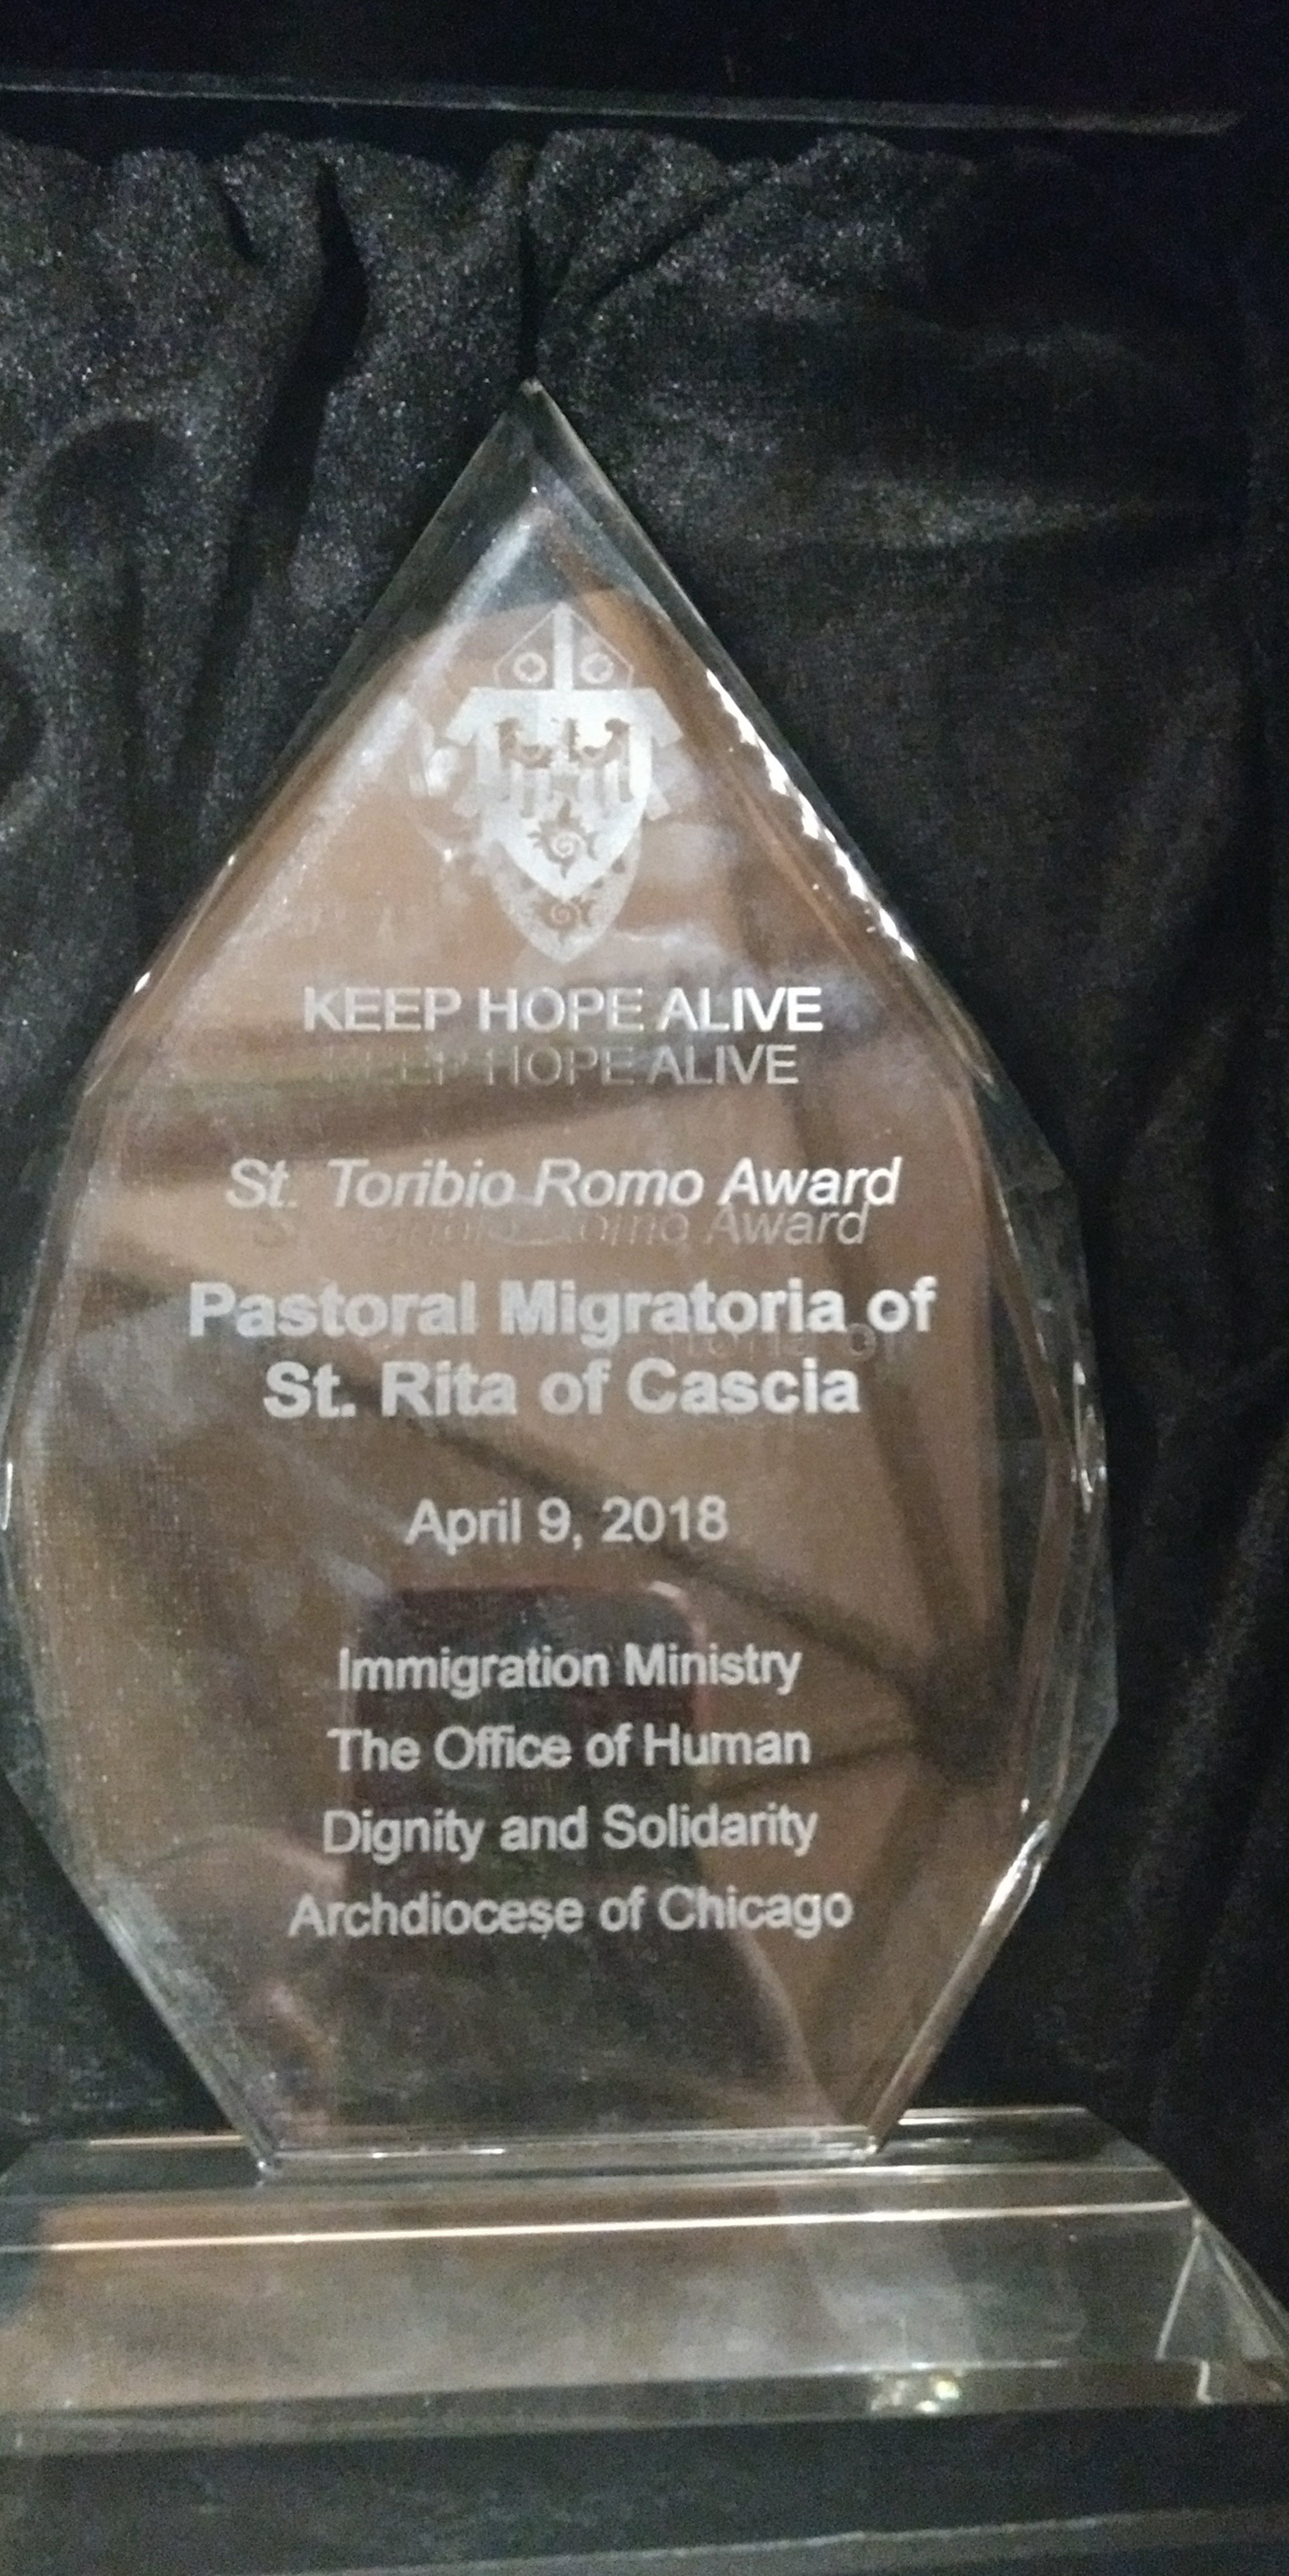 St. Toribio Romo Award, given to St. Rita's Pastoral Migratoria on April 9, 2018, for its contribution to the immigrant community.